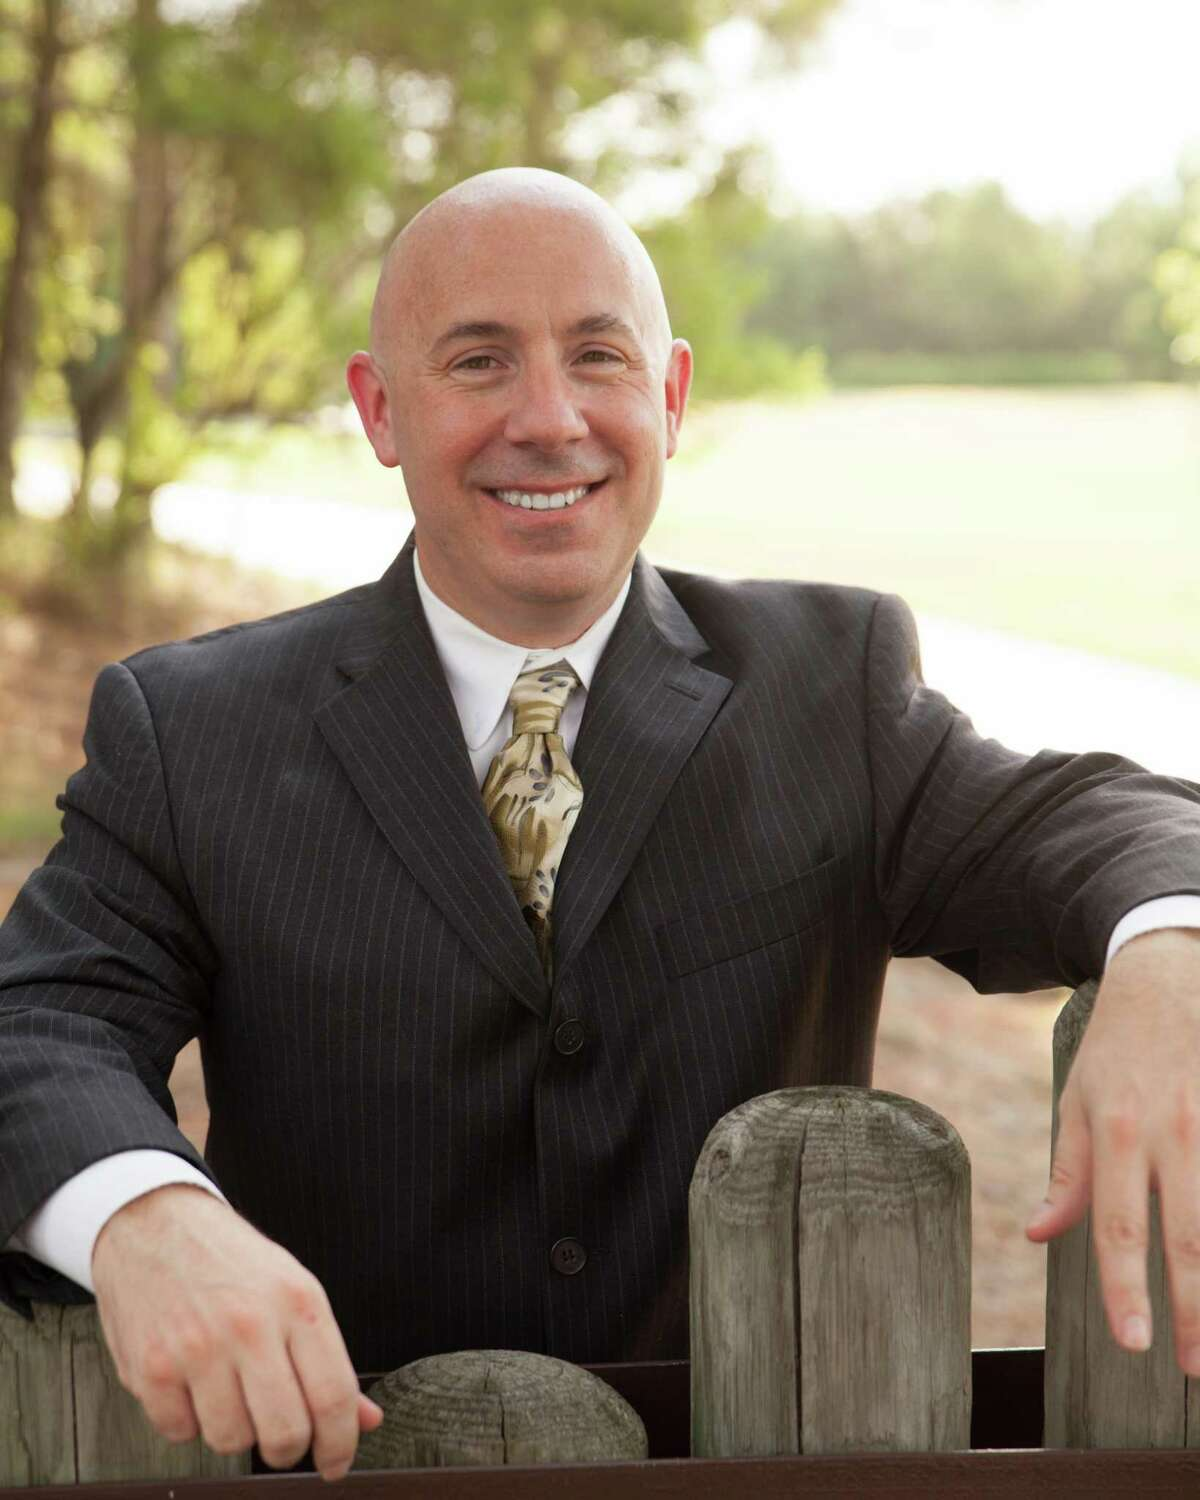 John Anthony Brown is unchallenged in his bid for a third term on The Woodlands Township Board of Directors.